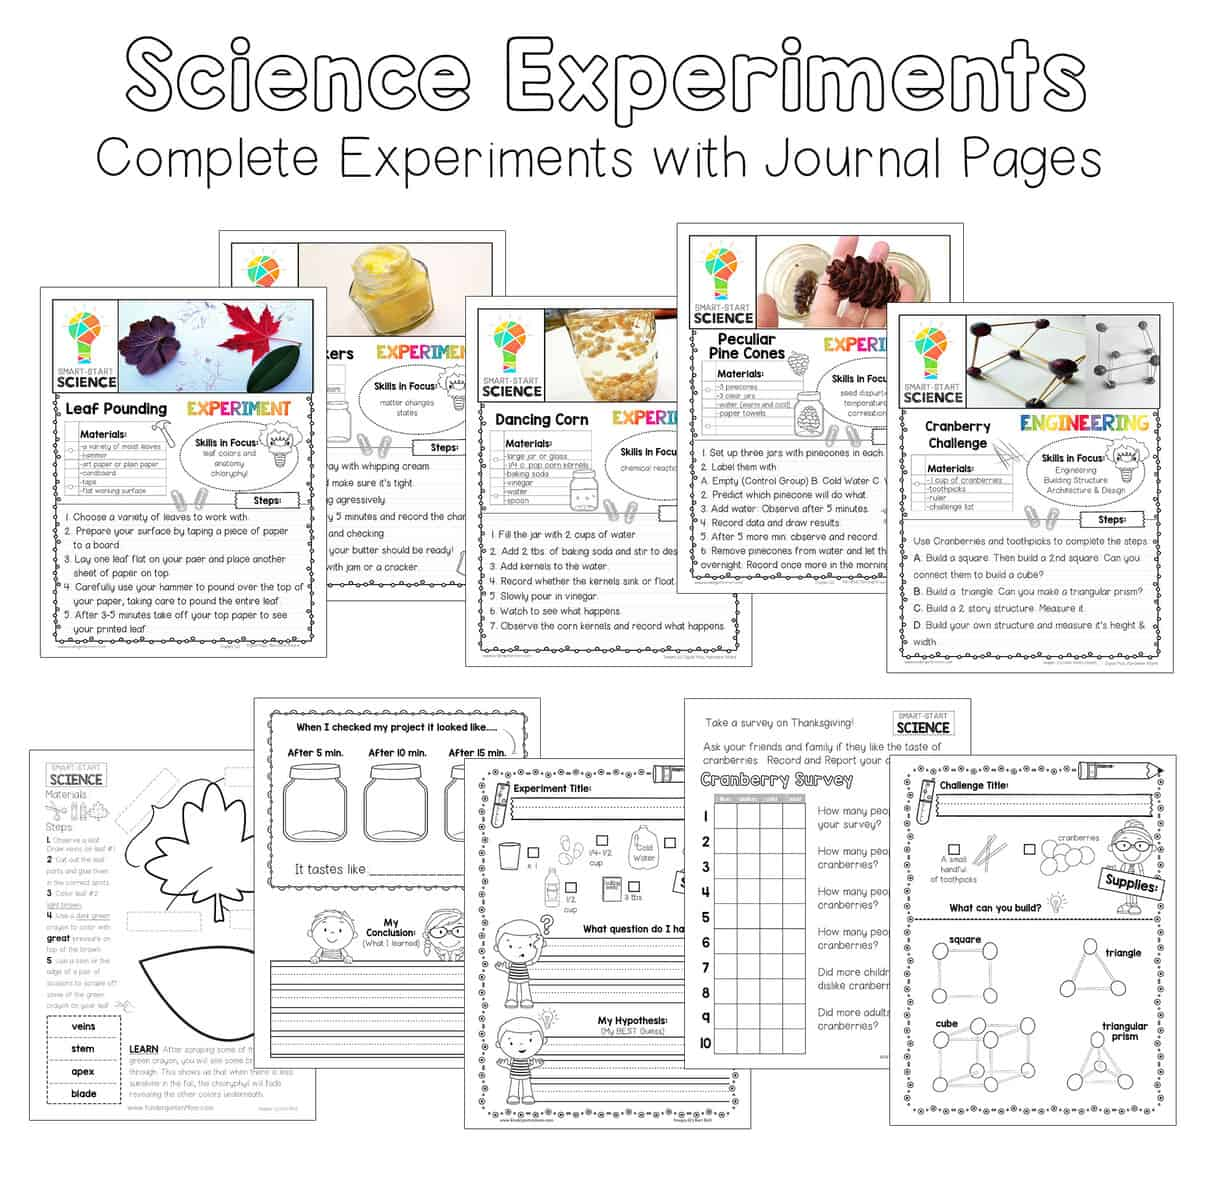 Printables archives thanksgiving science this set includes five simple science experiments and challenges each thematic activity guides students through a fun fandeluxe Choice Image